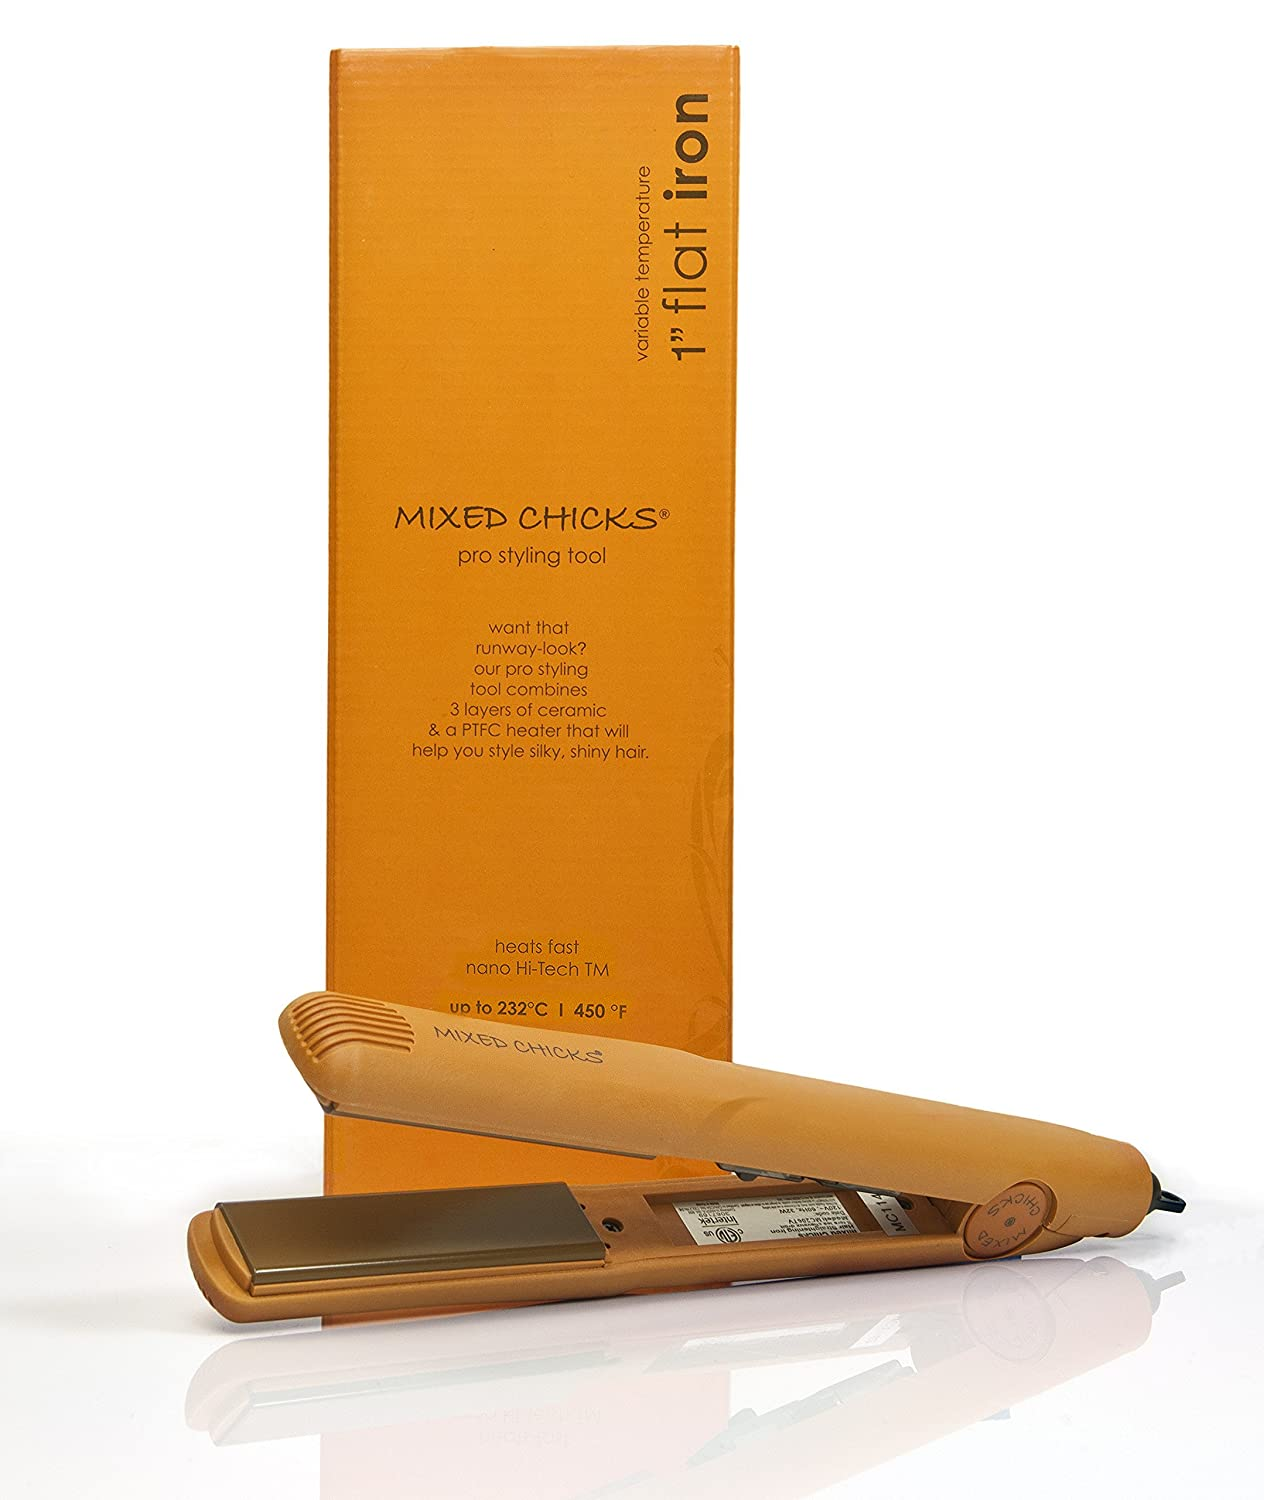 Mixed Chicks Variable Temperature Ceramic Flat Iron, 1 Inch